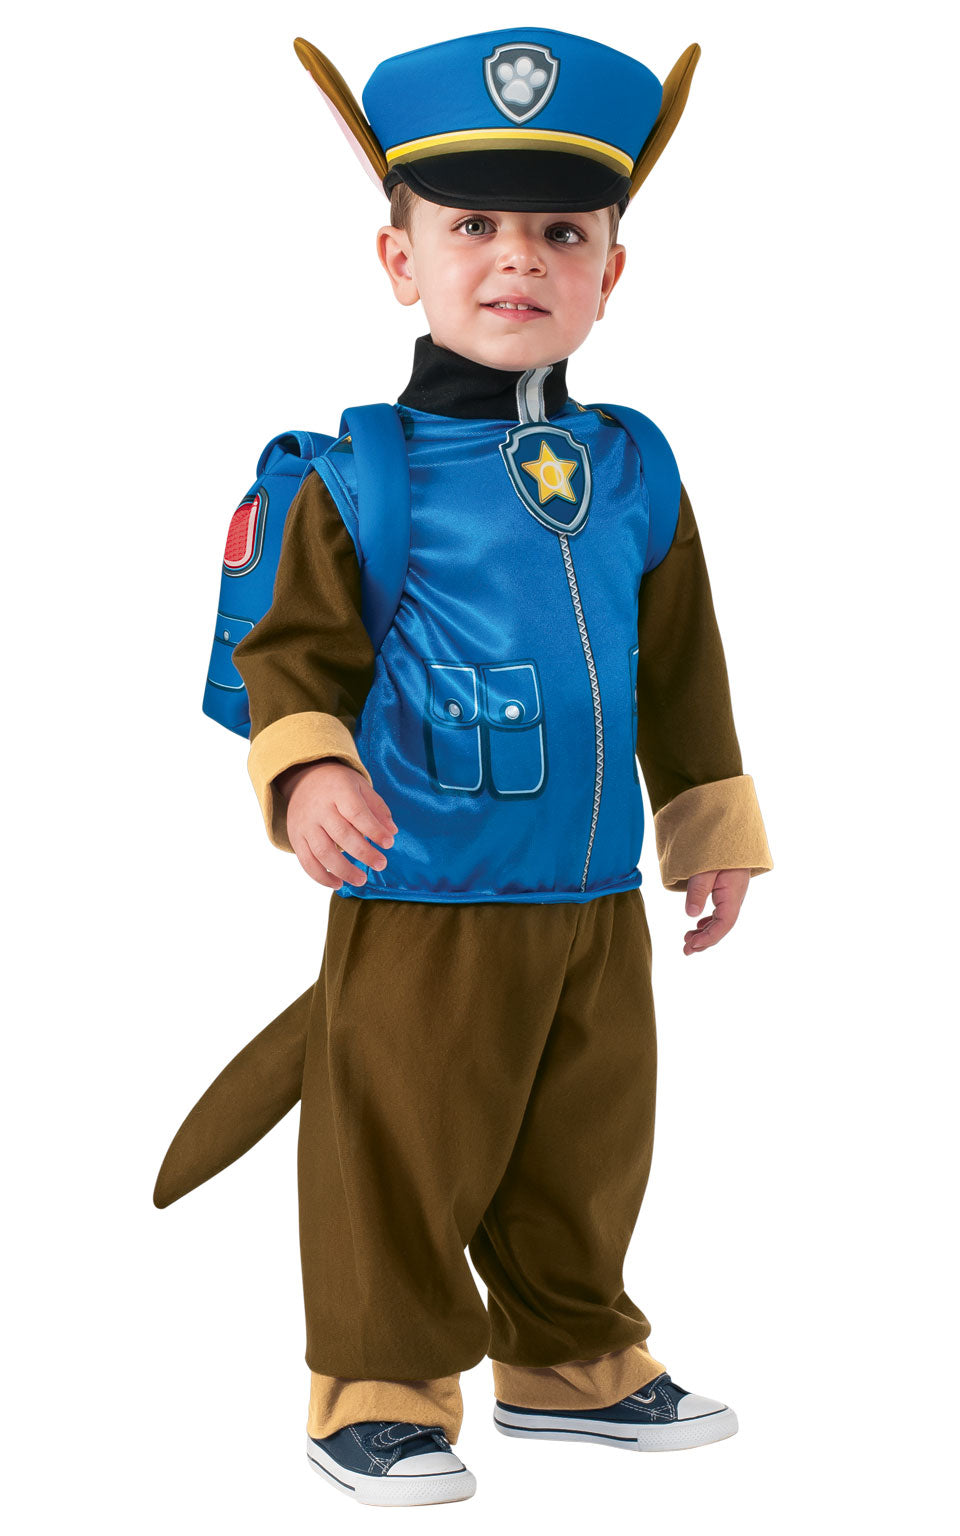 PAW PATROL (CHASE) Children's Fancy Dress Costume